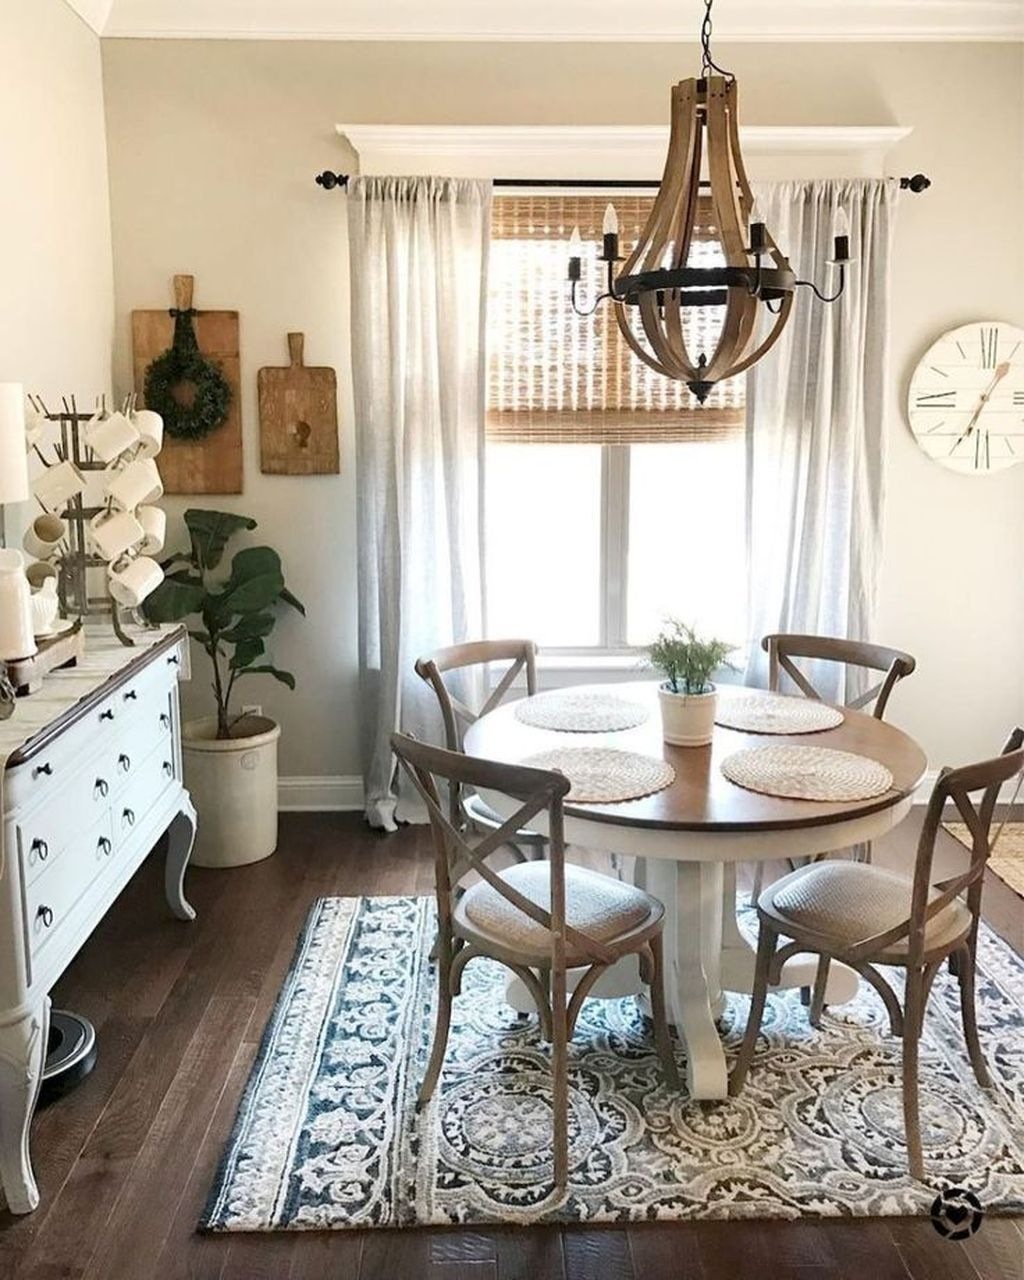 50 Amazing Rustic Dining Room Design Ideas Sweetyhomee Modern Farmhouse Dining Room Decor Modern Farmhouse Dining Room Rustic Dining Room